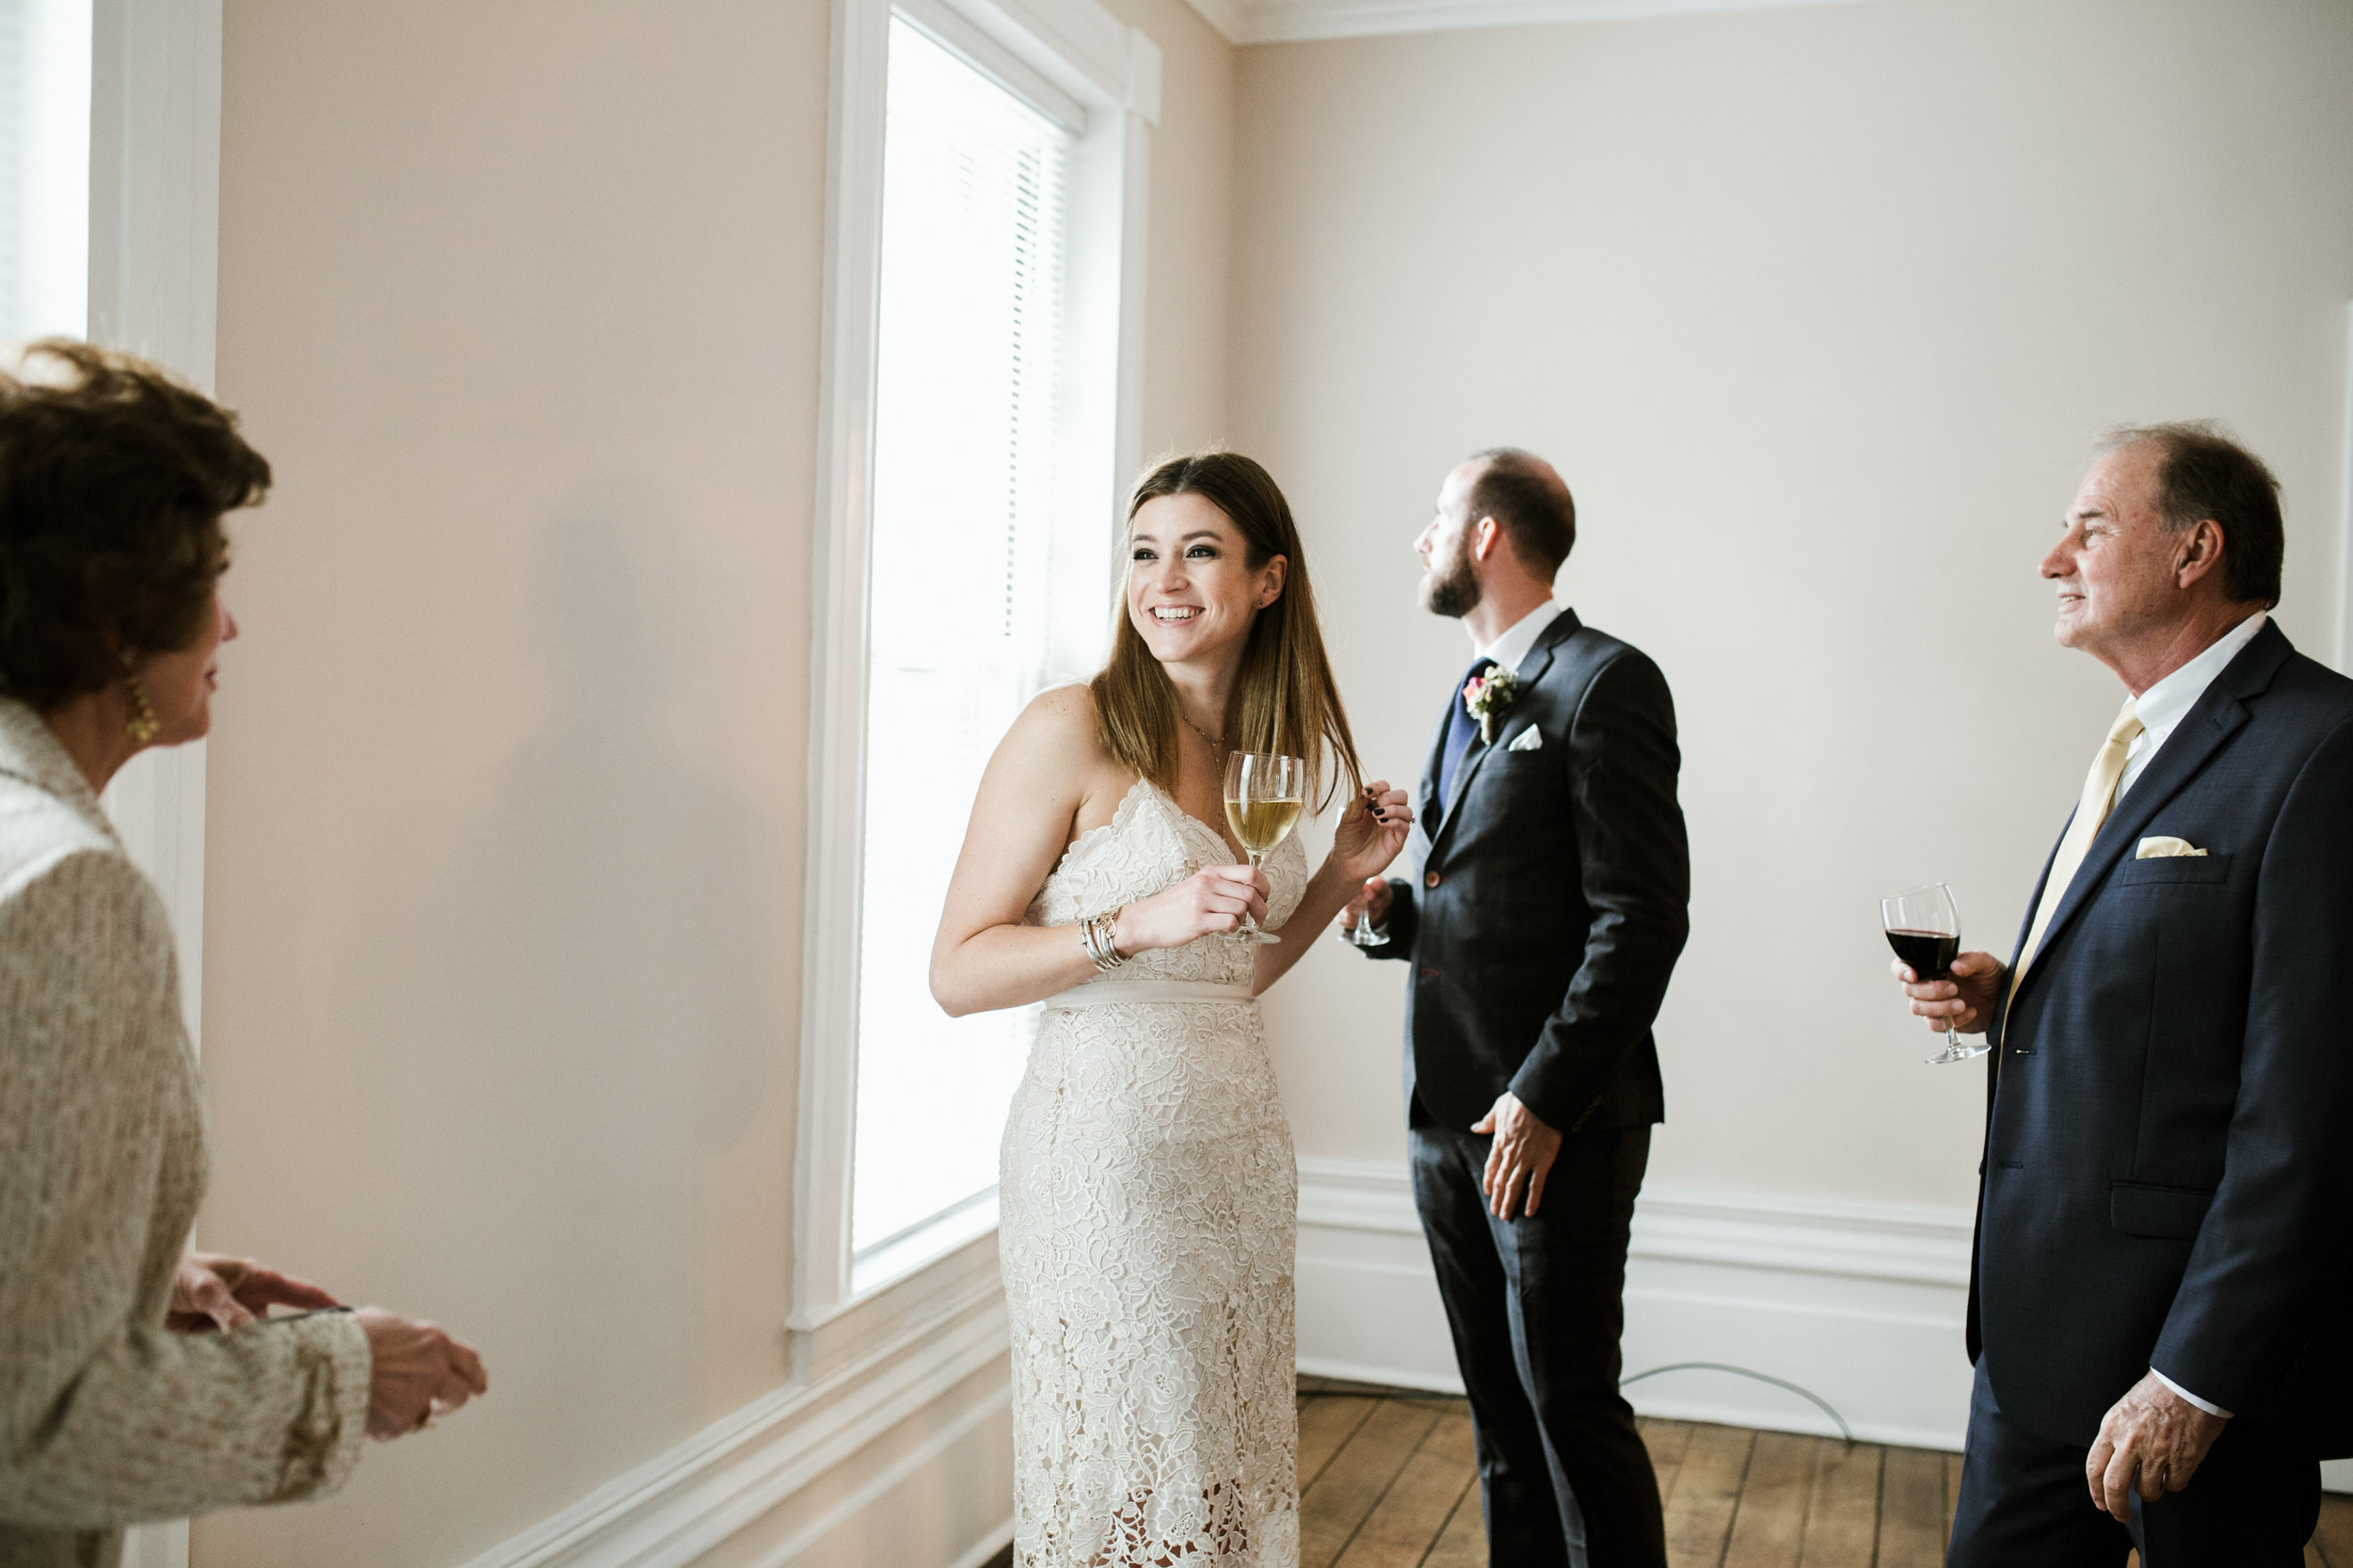 Louisville Courthouse Wedding Louisville Wedding Photographer 2018 Crystal Ludwick Photo Louisville Wedding Photographer Kentucky Wedding Photographer (31 of 76).jpg